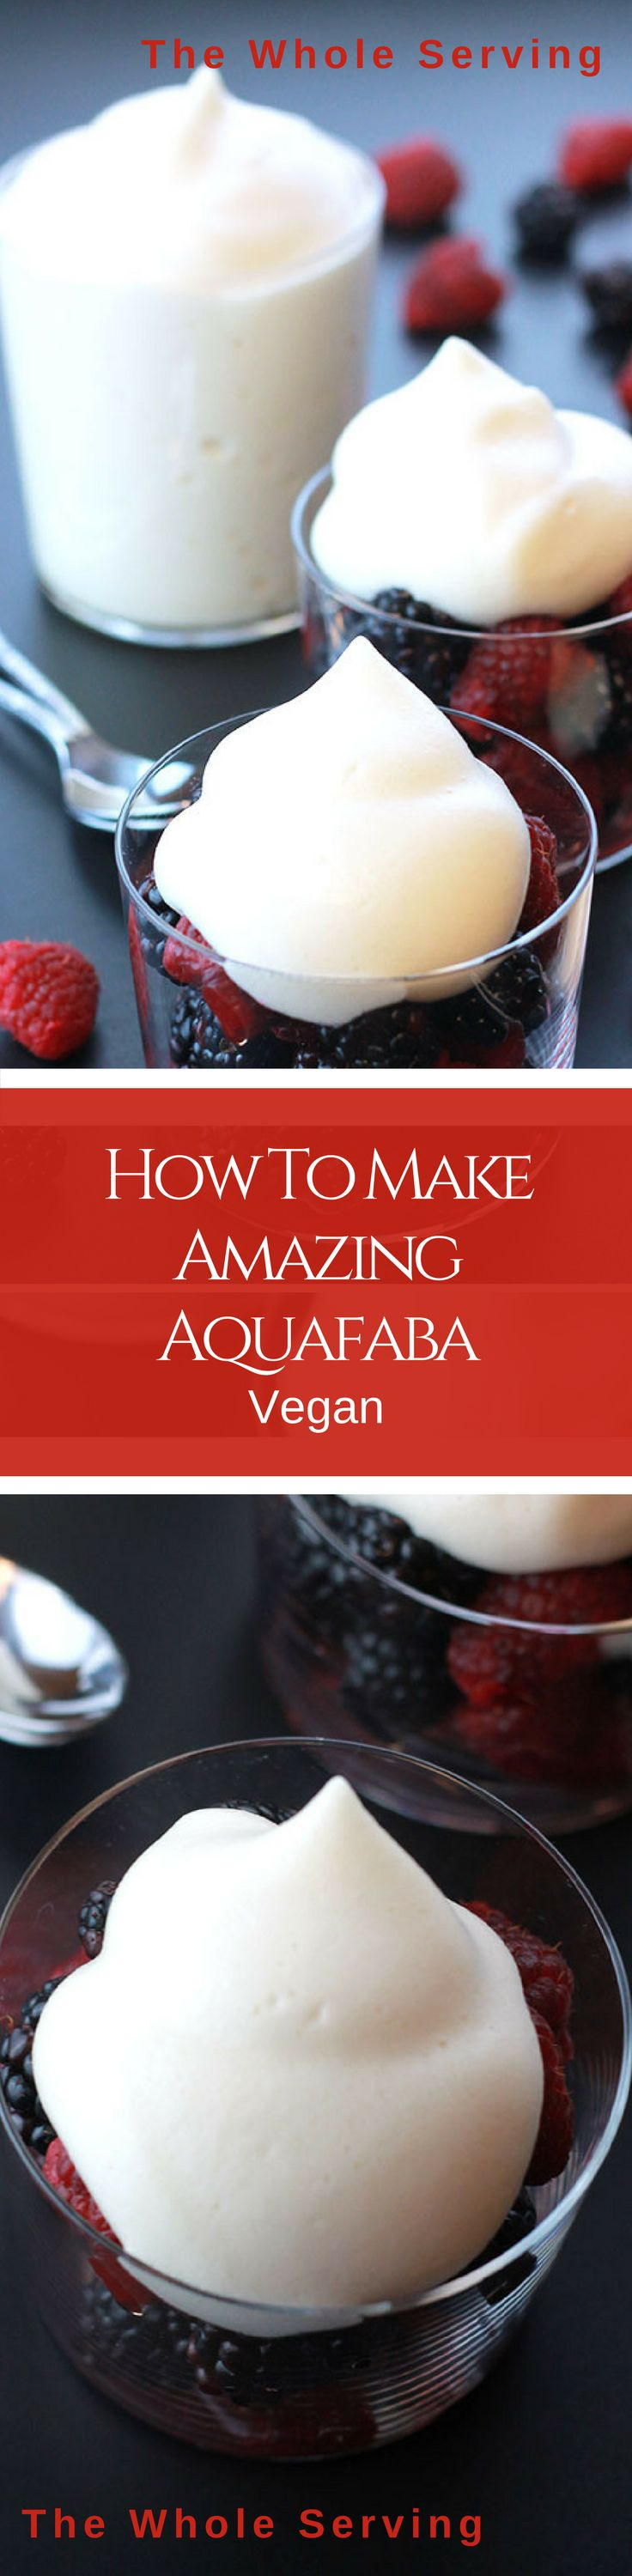 How To Make Amazing Whipped Aquafaba